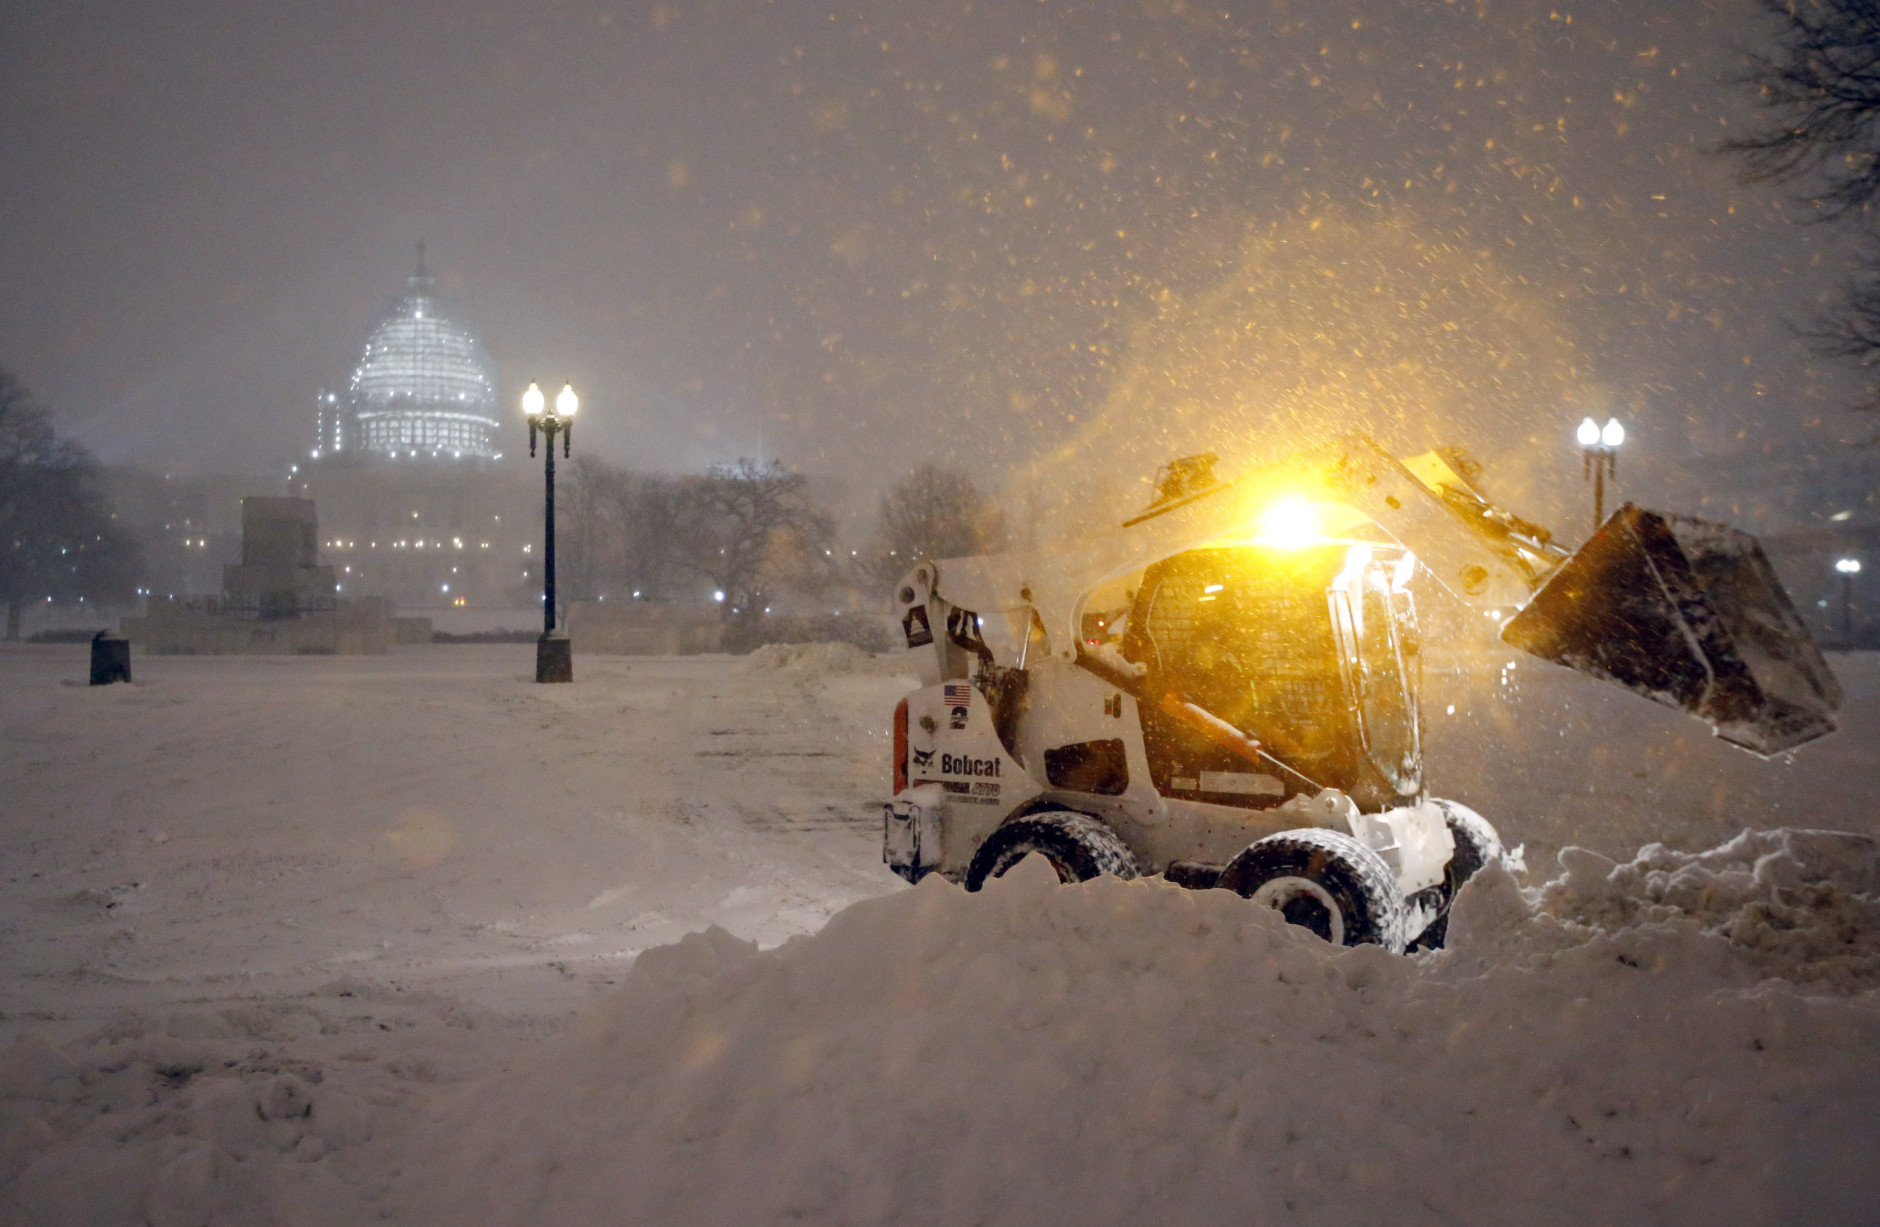 A bobcat piles up snow in front of the U.S. Capitol, as the snow continues to fall, Friday, Jan. 22, 2016, in Washington. (AP Photo/Alex Brandon)